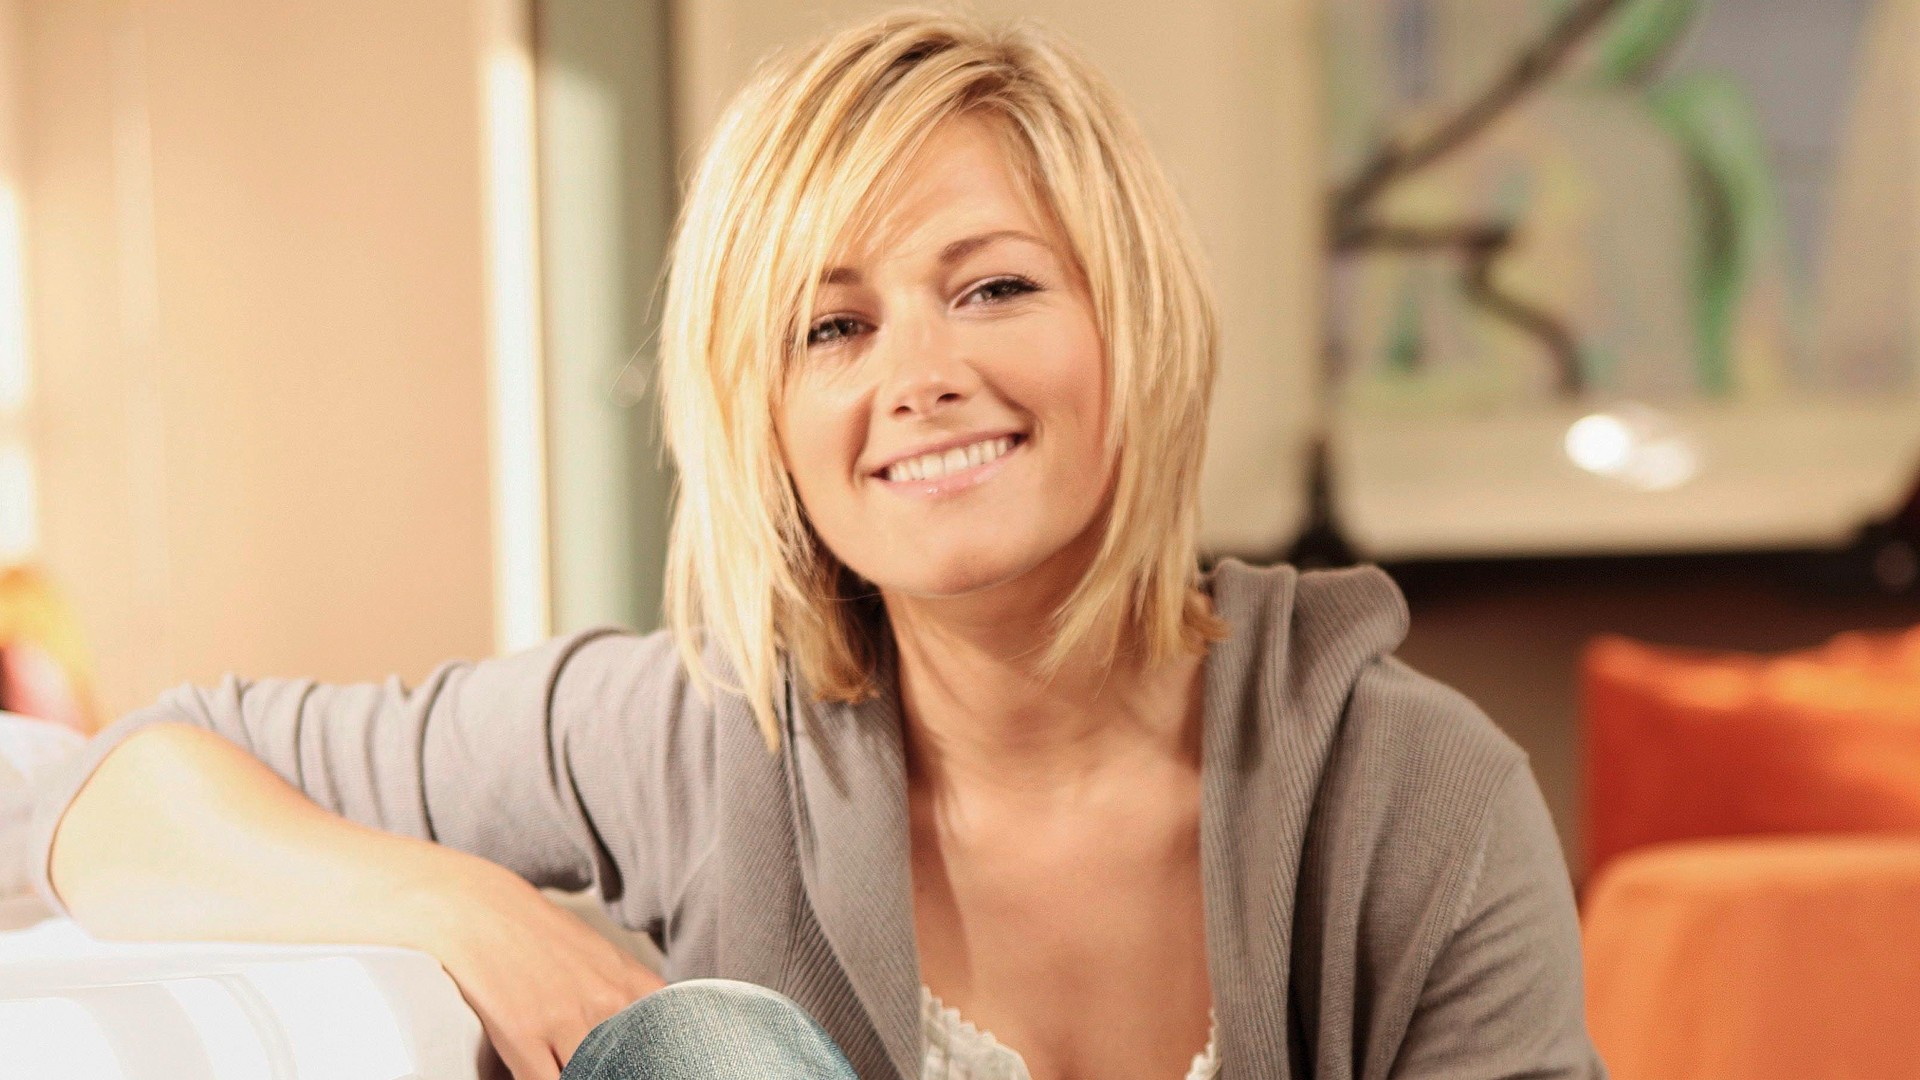 helene fischer wallpapers images photos pictures backgrounds. Black Bedroom Furniture Sets. Home Design Ideas